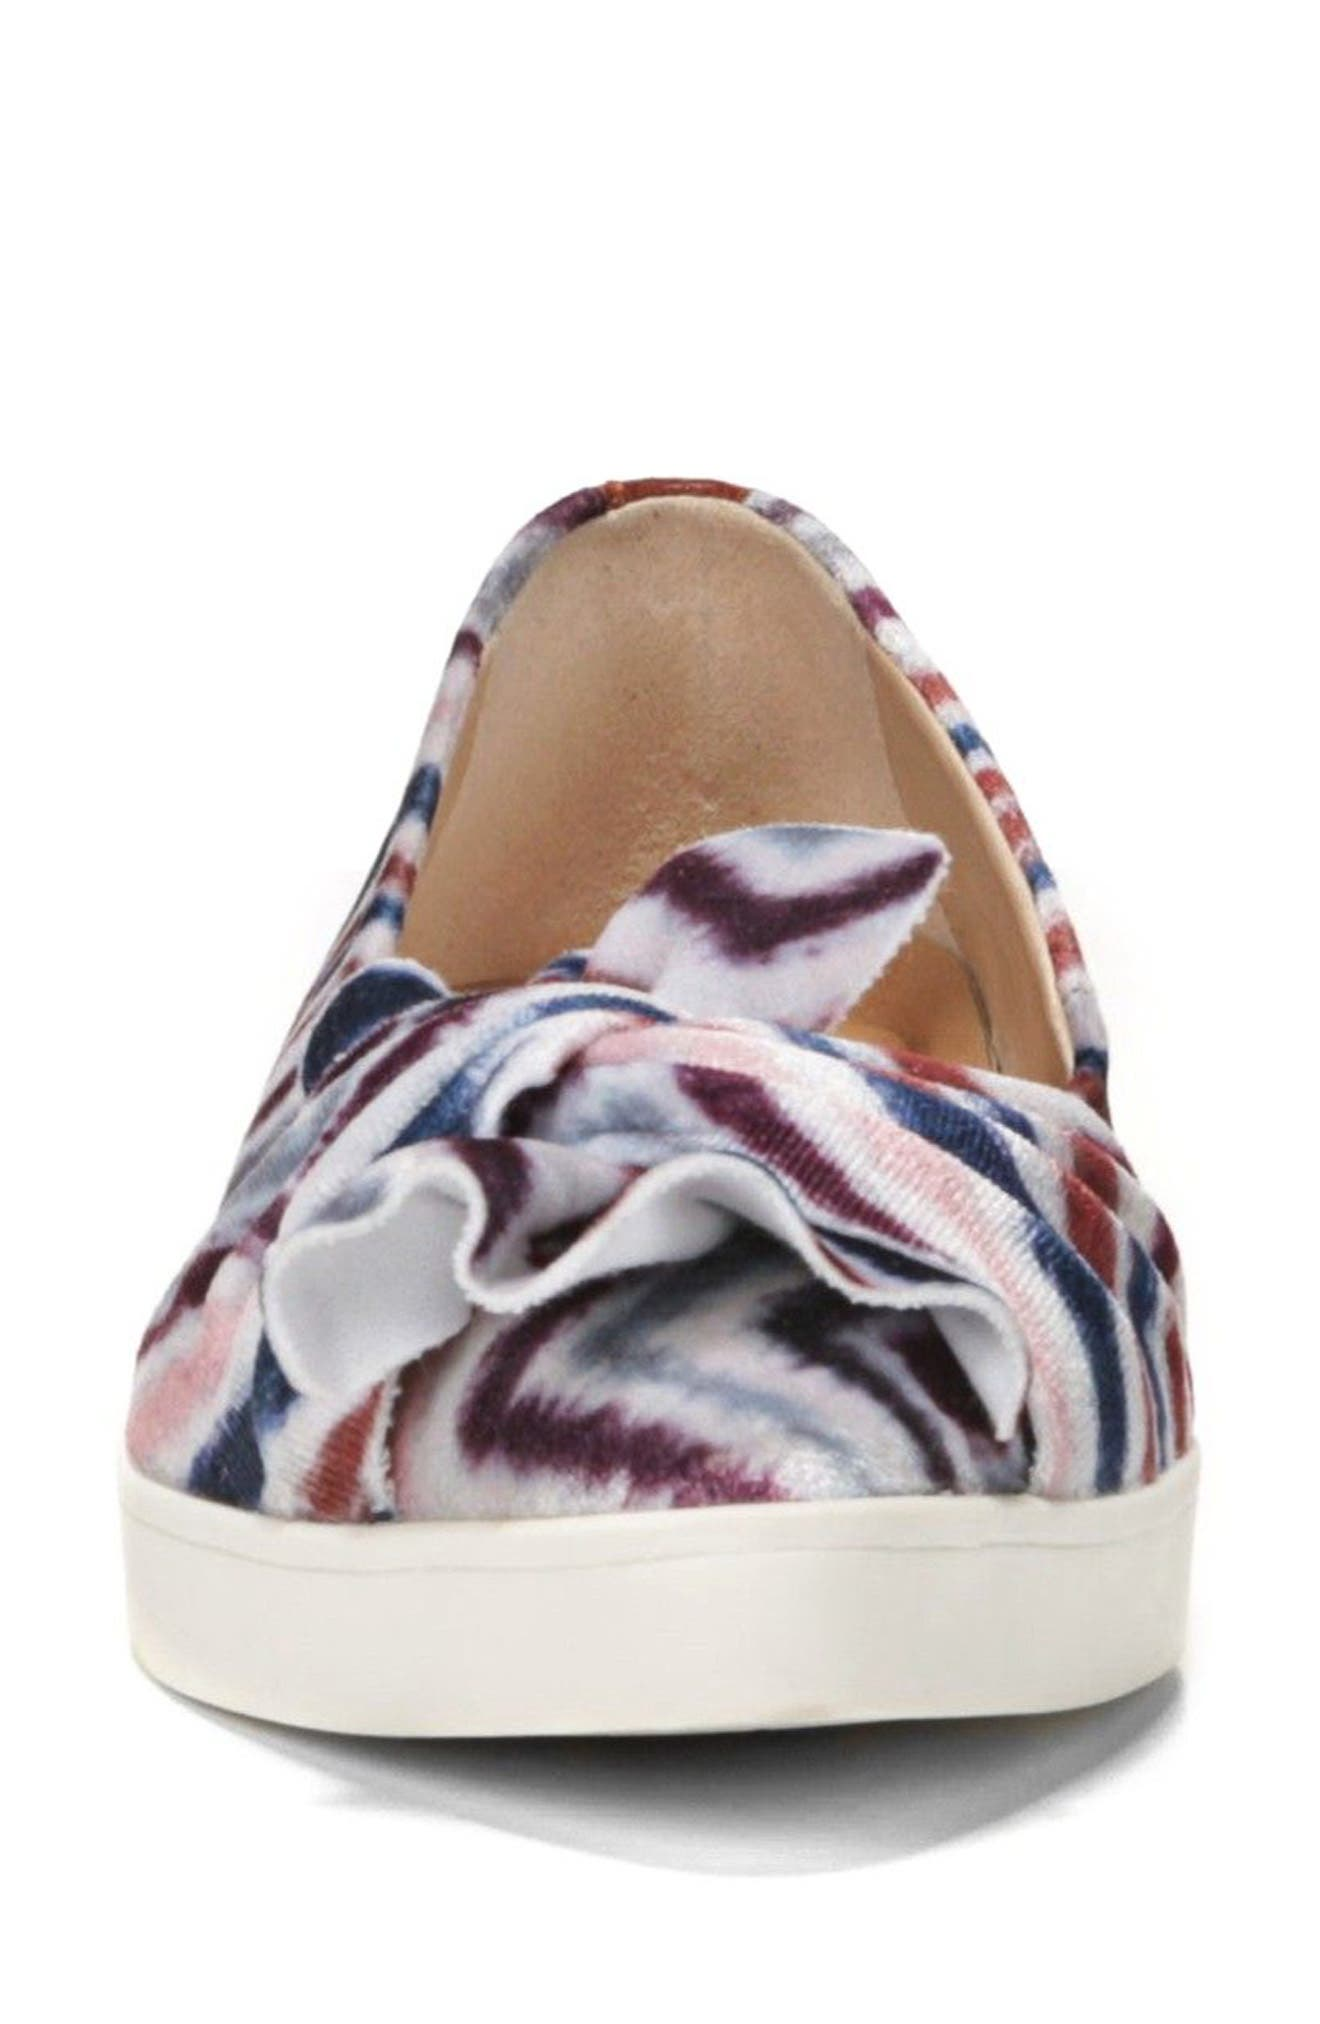 Viv Knotted Sneaker,                             Alternate thumbnail 5, color,                             Henna Printed Suede